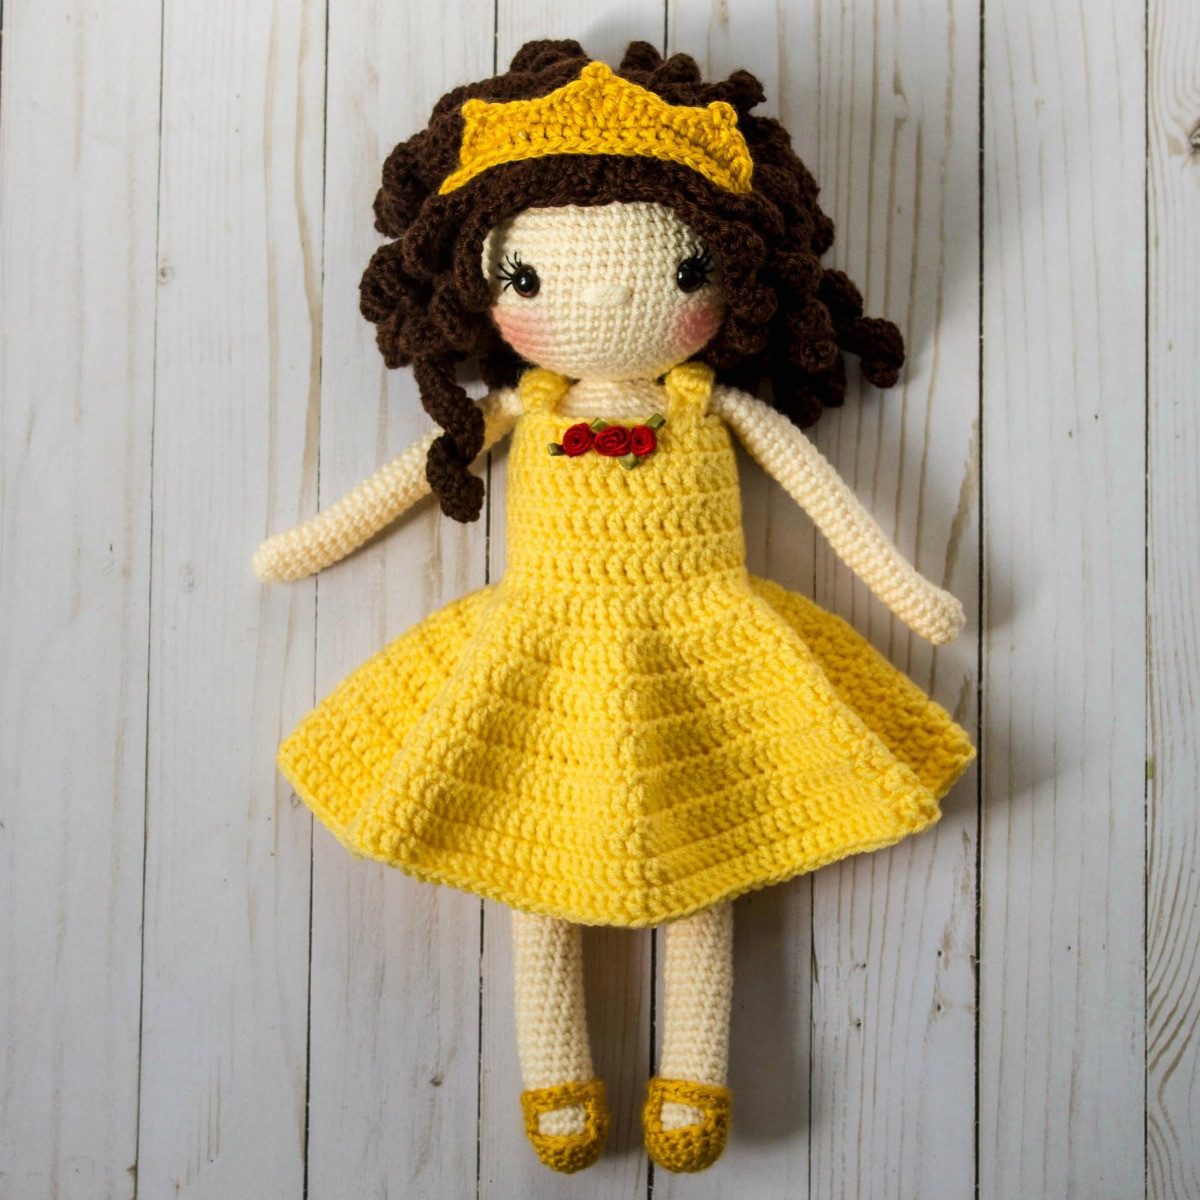 Doll Patterns Beautiful Free Crochet Doll Pattern the Friendly sophie Of Doll Patterns Best Of Rag Doll Patterns